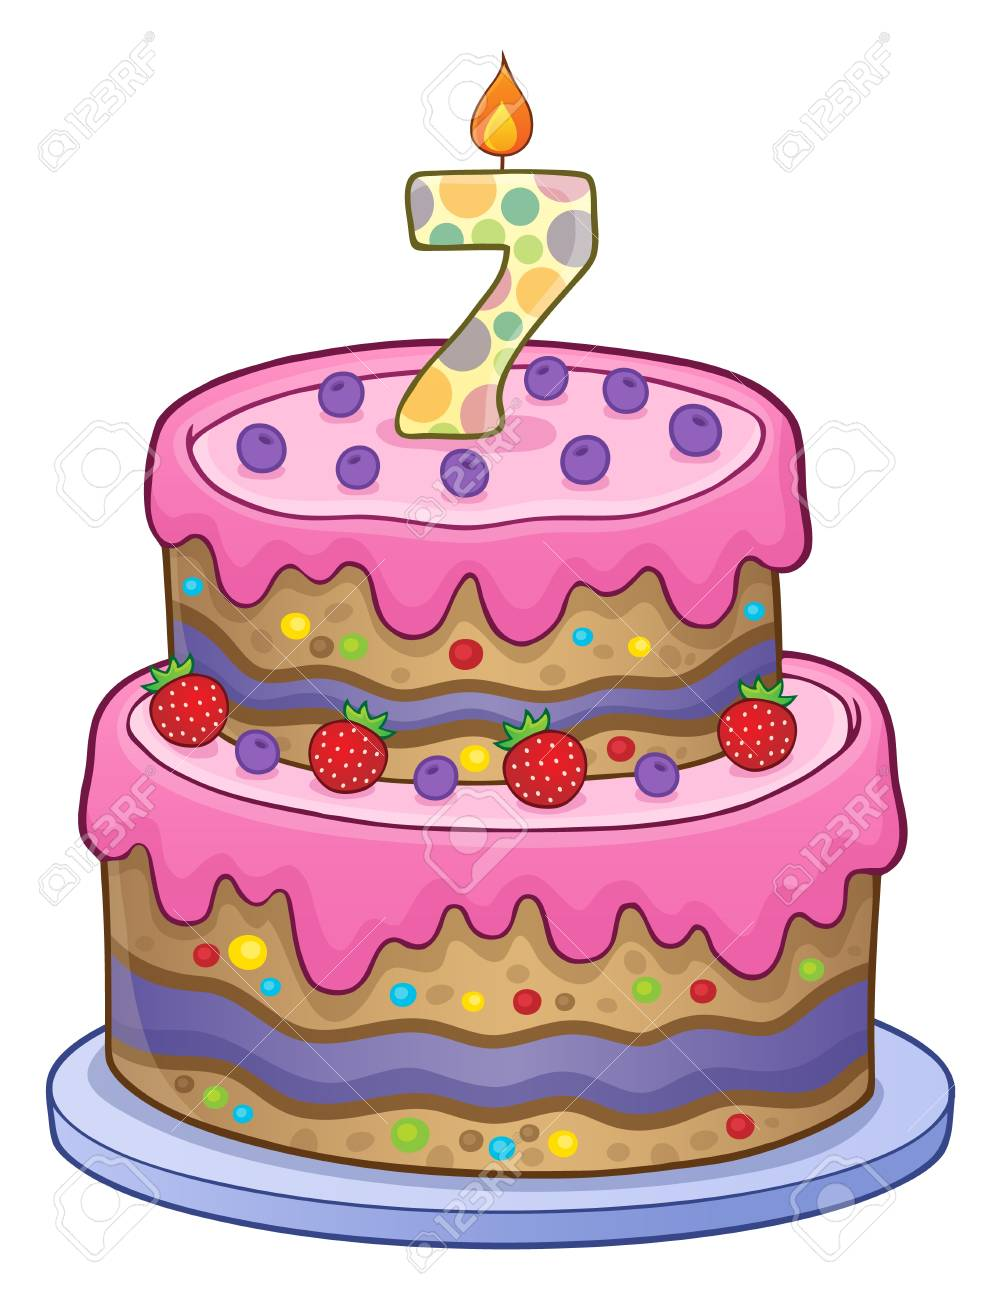 Birthday Cake Image For 7 Years Old Stock Vector